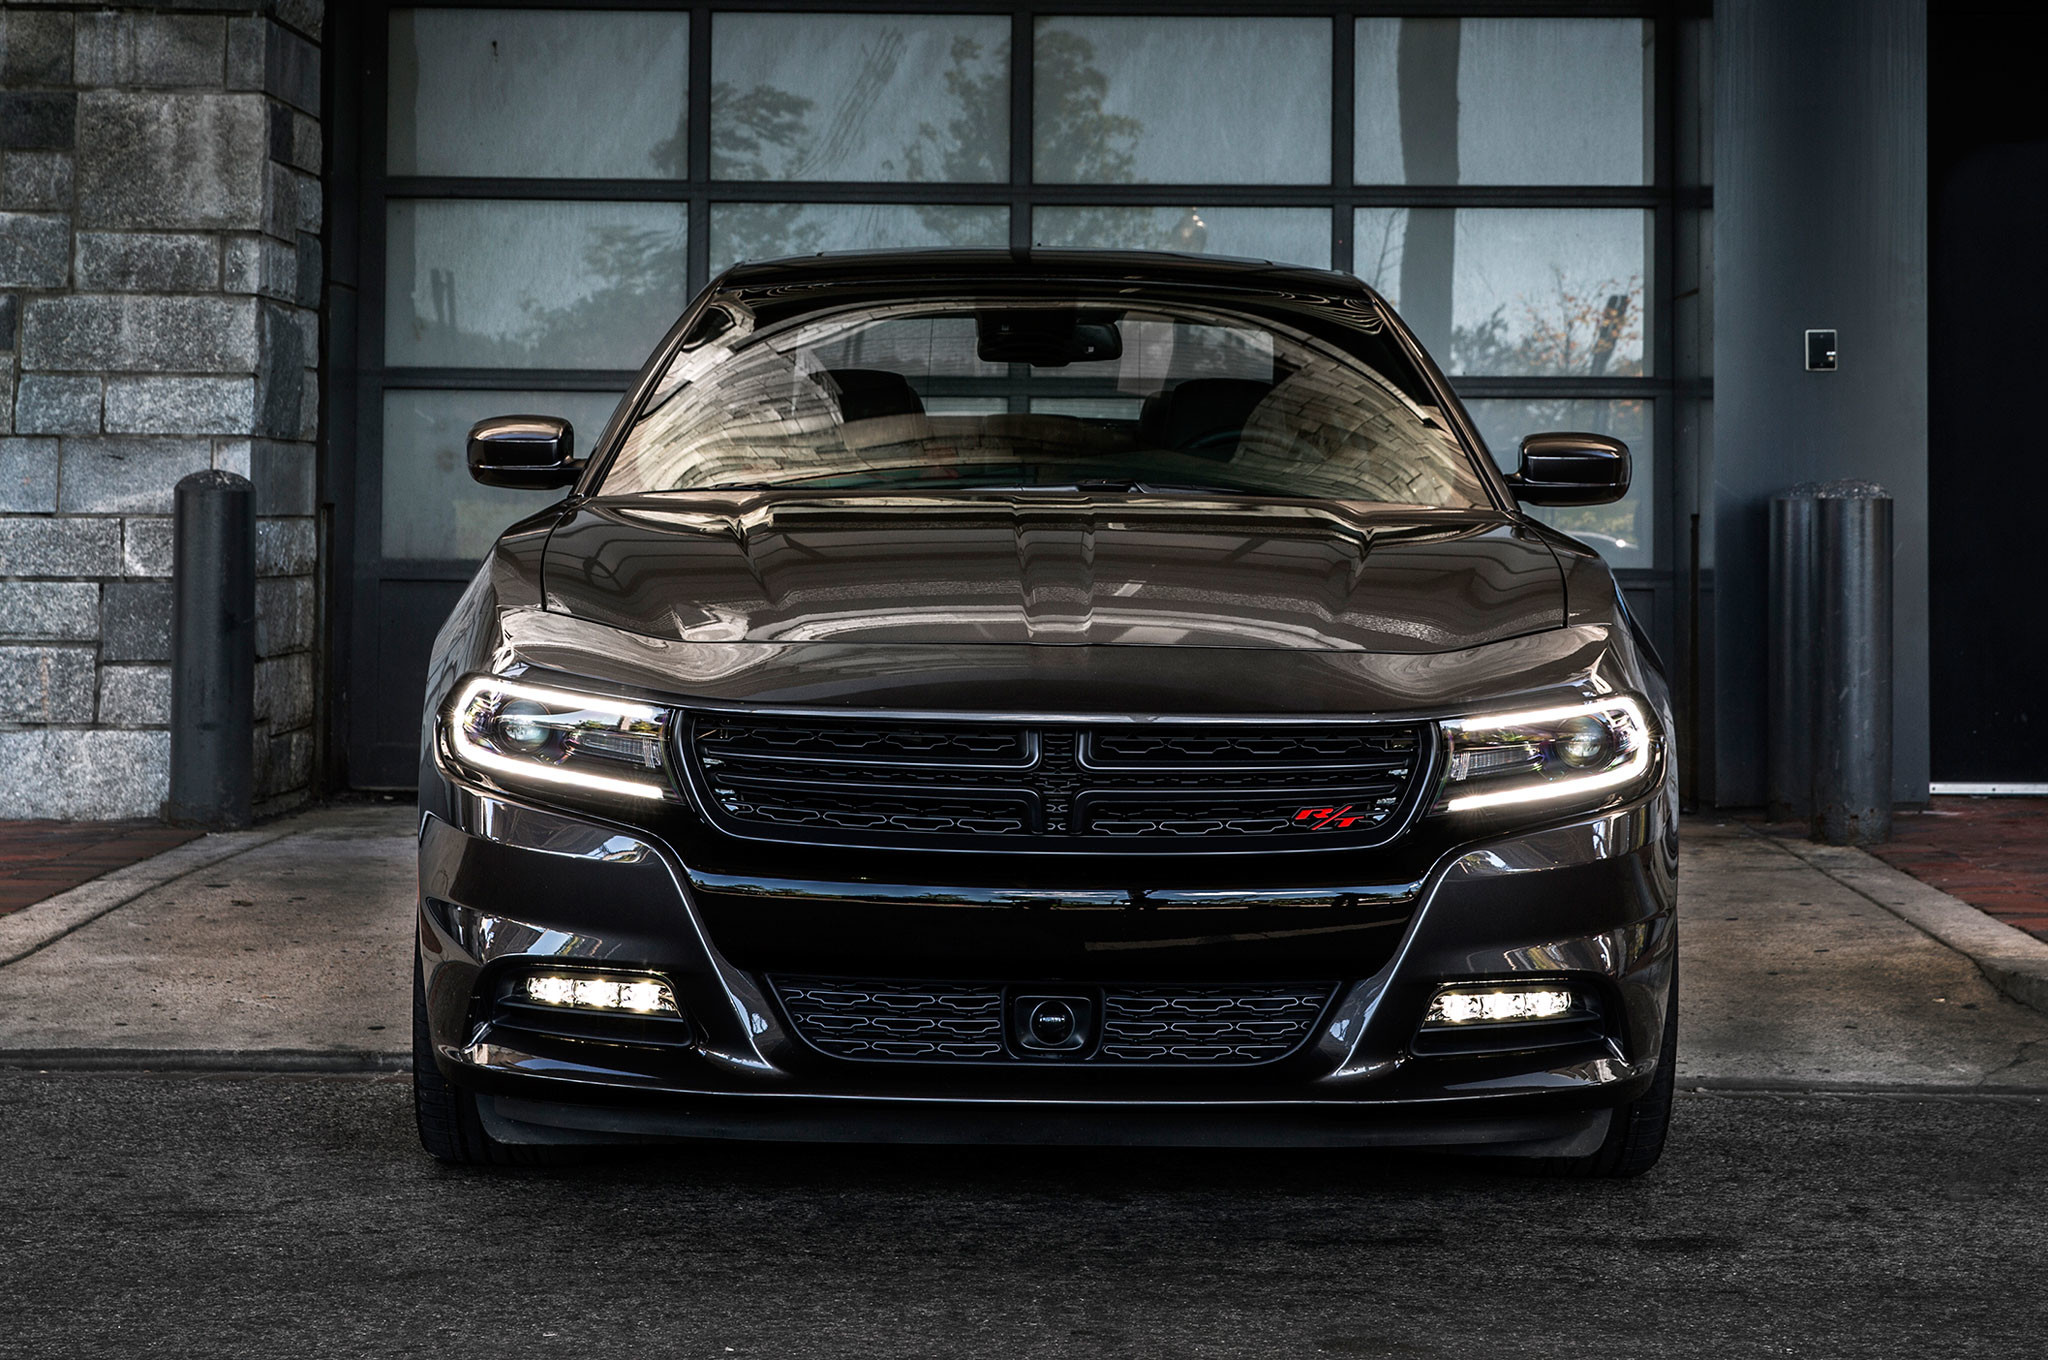 2048x1360 dodge charger wallpaper pictures 5270